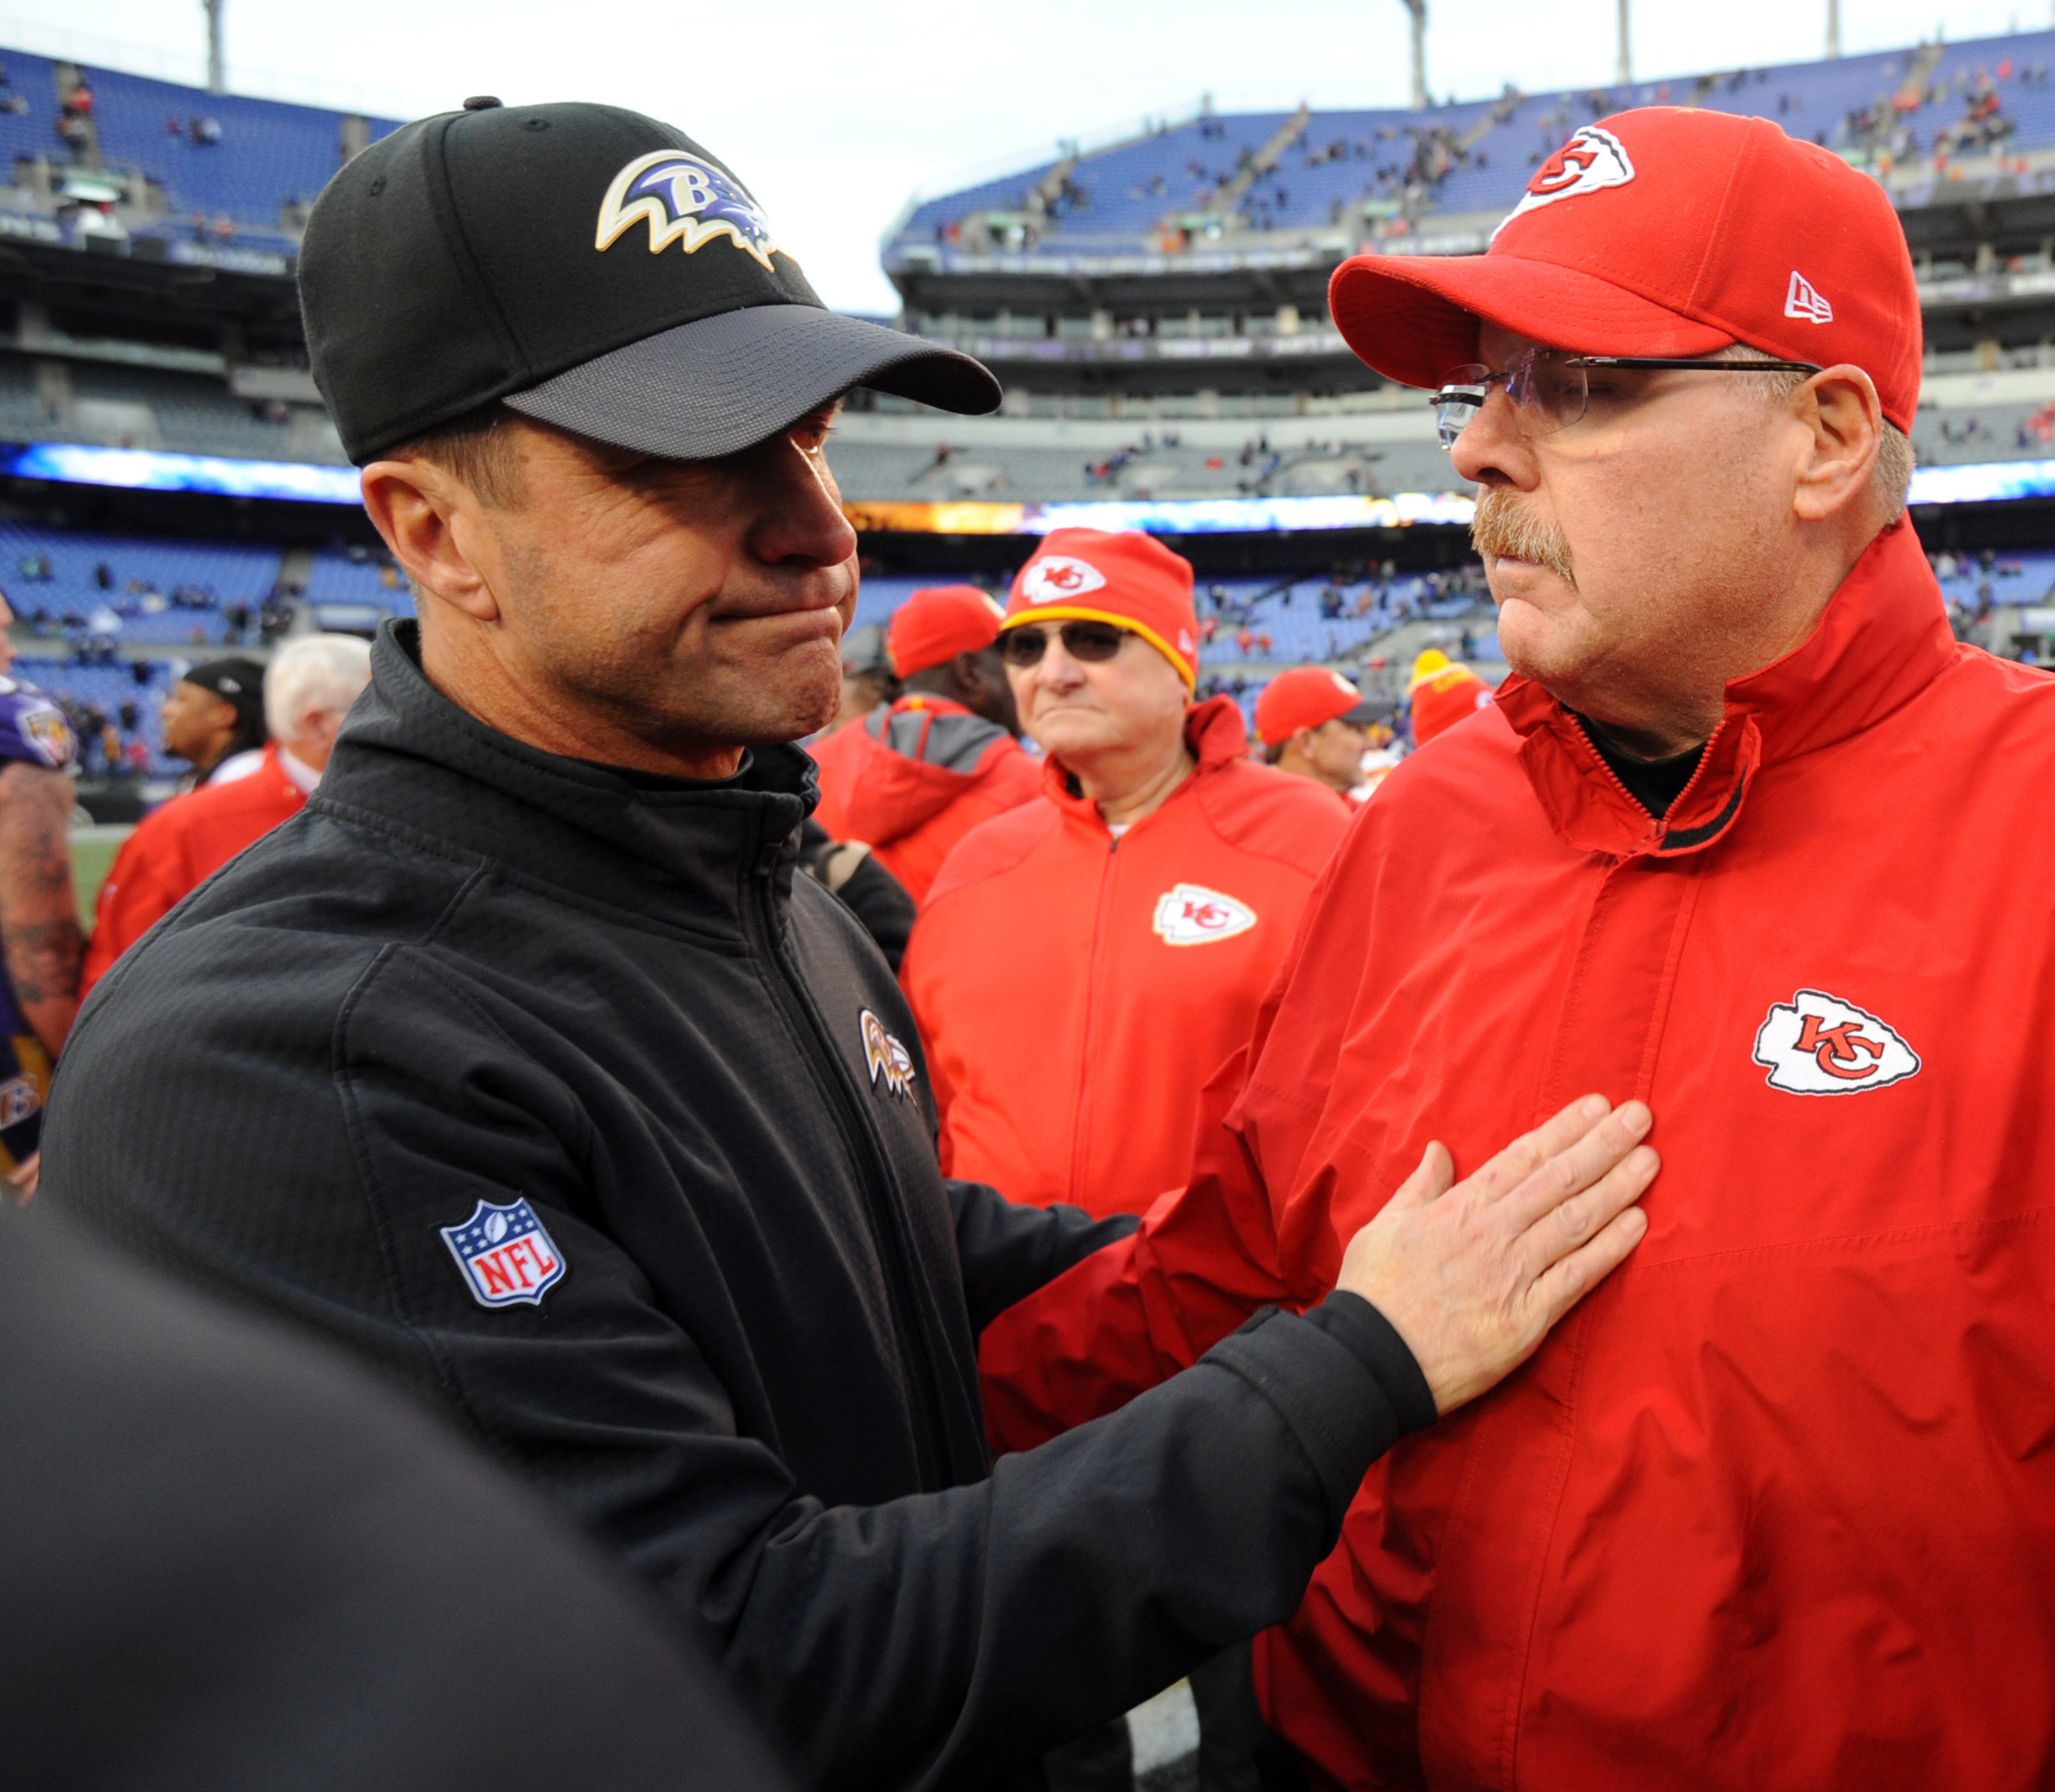 FILE - In this Dec. 20, 2015, file photo, Baltimore Ravens head coach John Harbaugh, left, speaks with Kansas City Chiefs head coach Andy Reid after the Chiefs defeated the Ravens 34-14 in an NFL football game, in Baltimore. If Baltimore is to again becom